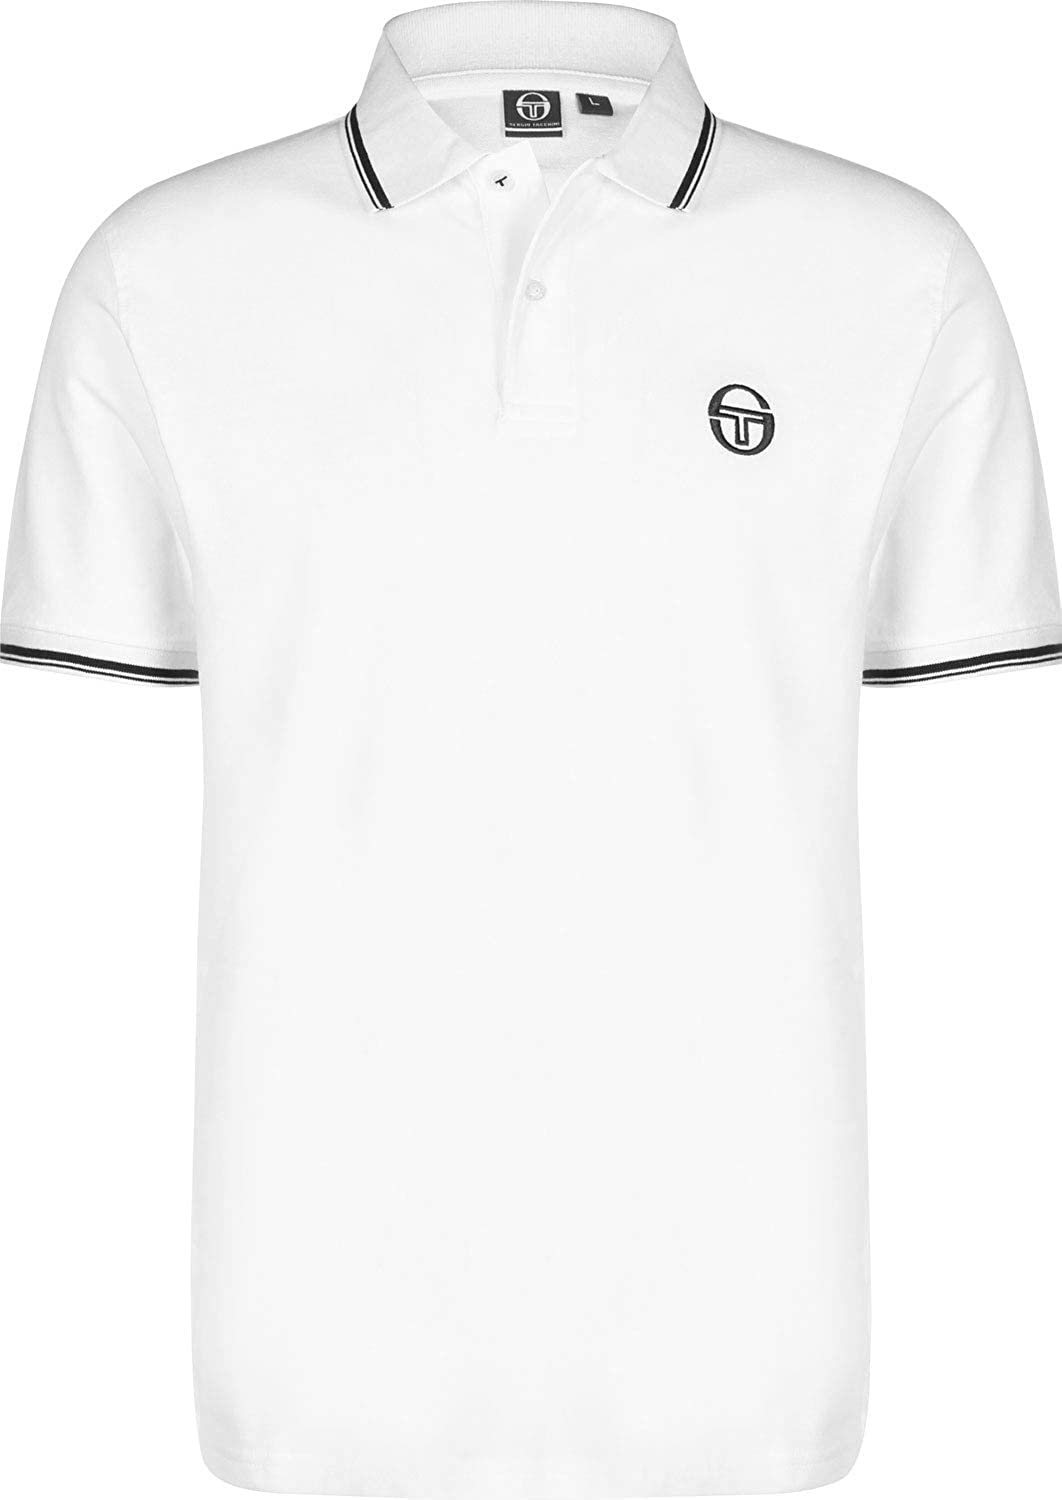 Sergio Tacchini Sergio 017 Polo White/Navy: Amazon.es: Ropa y ...